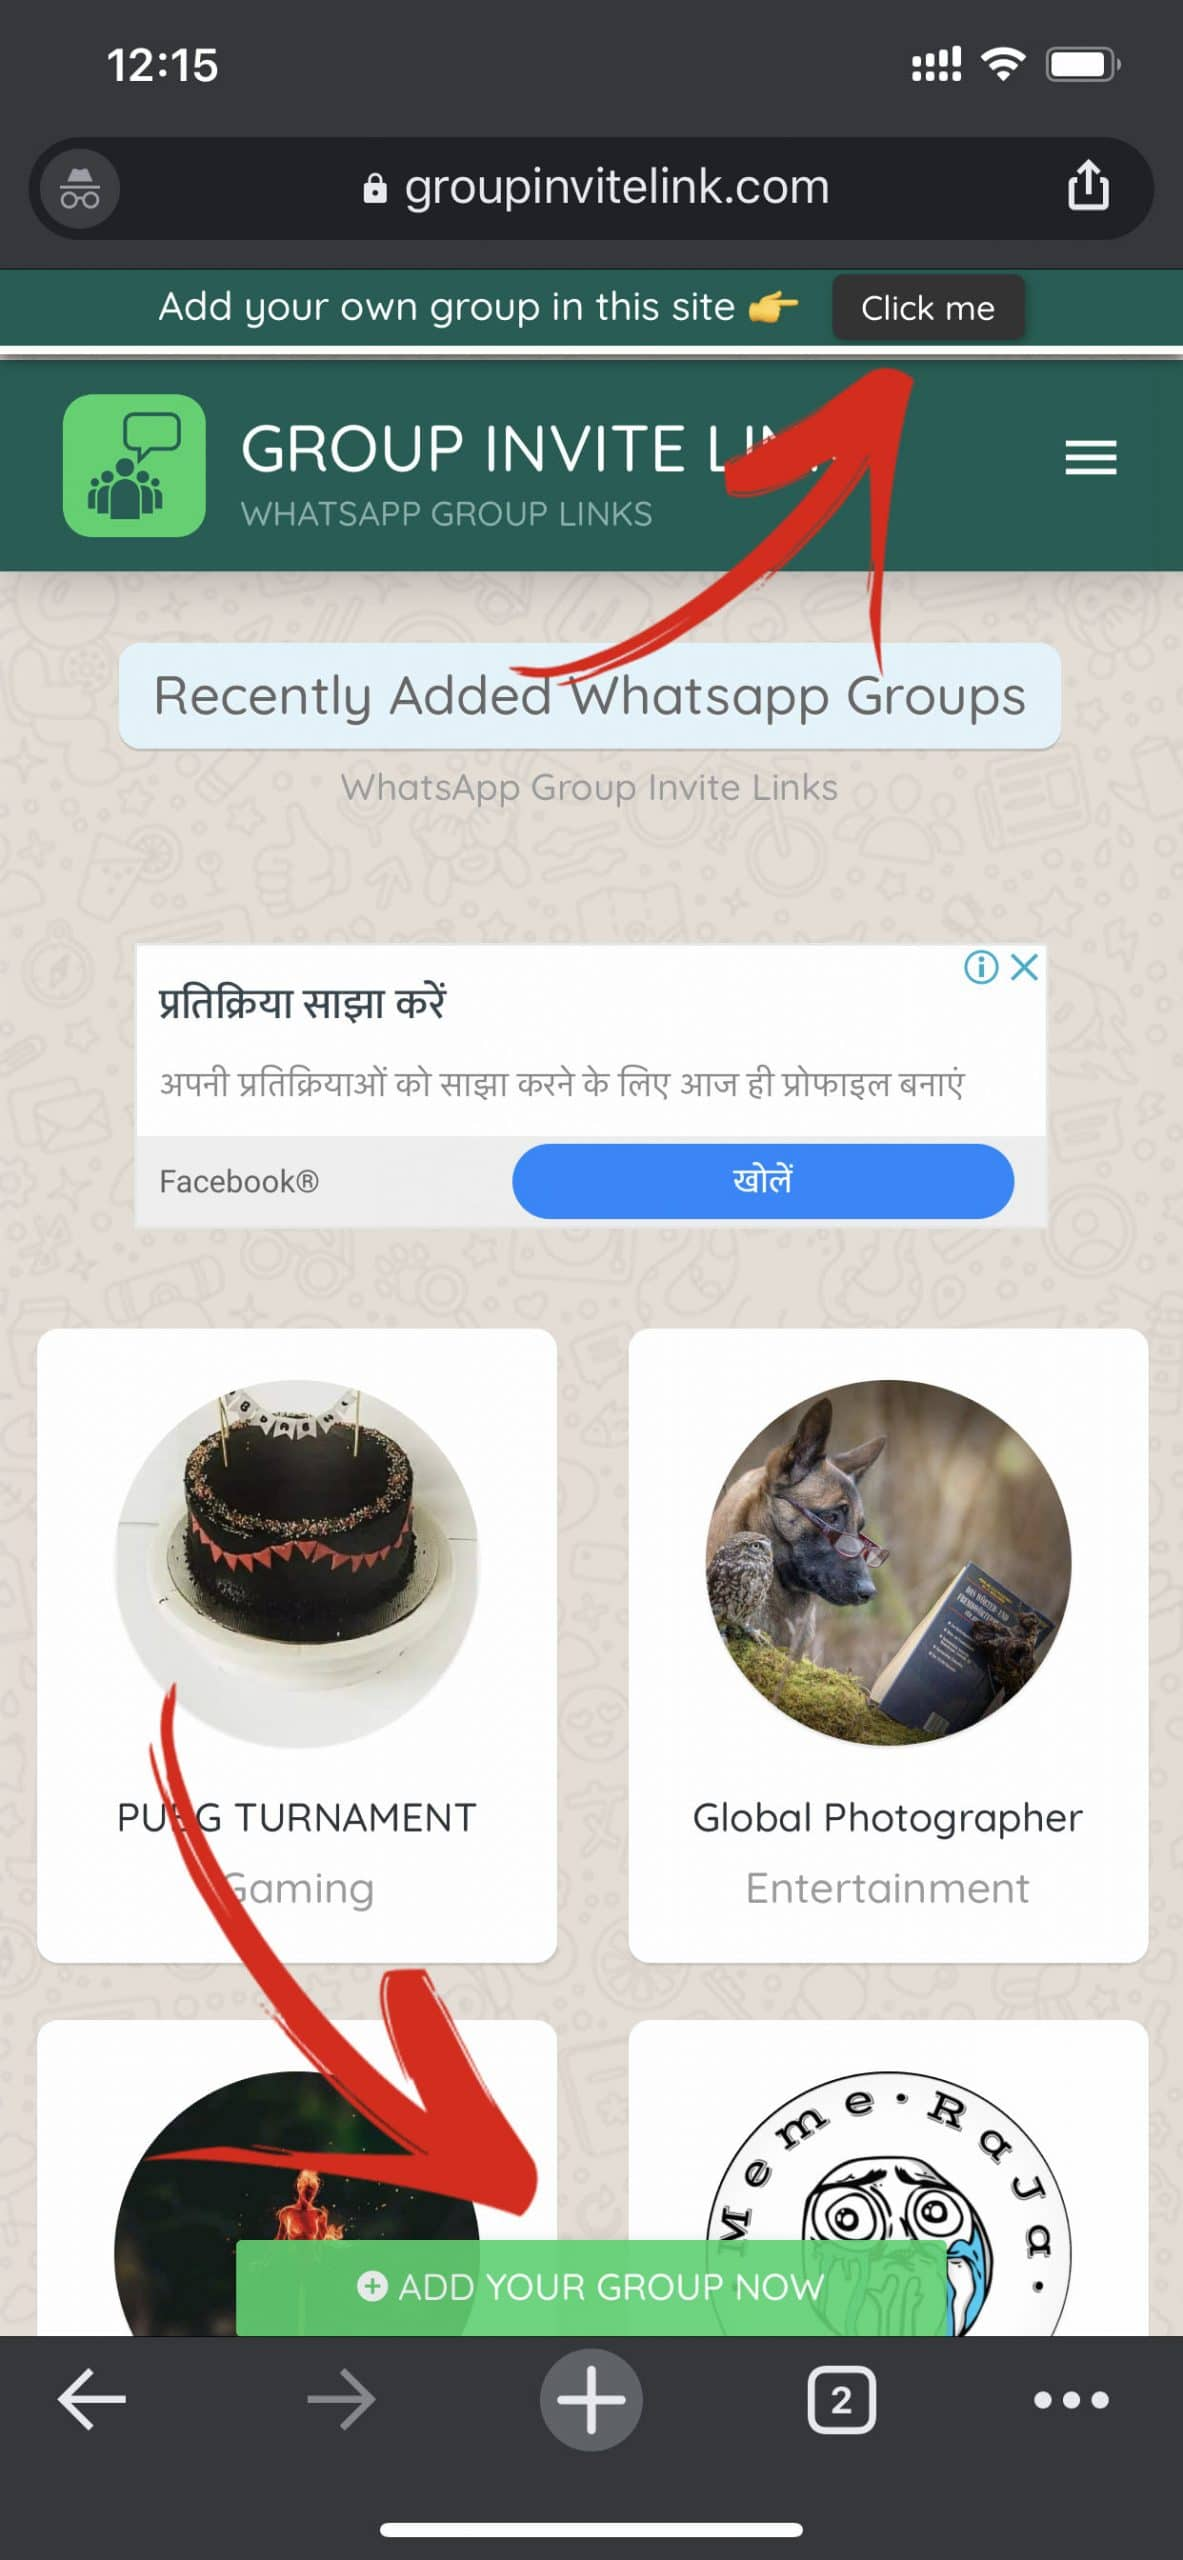 groupinvitelink-add-group